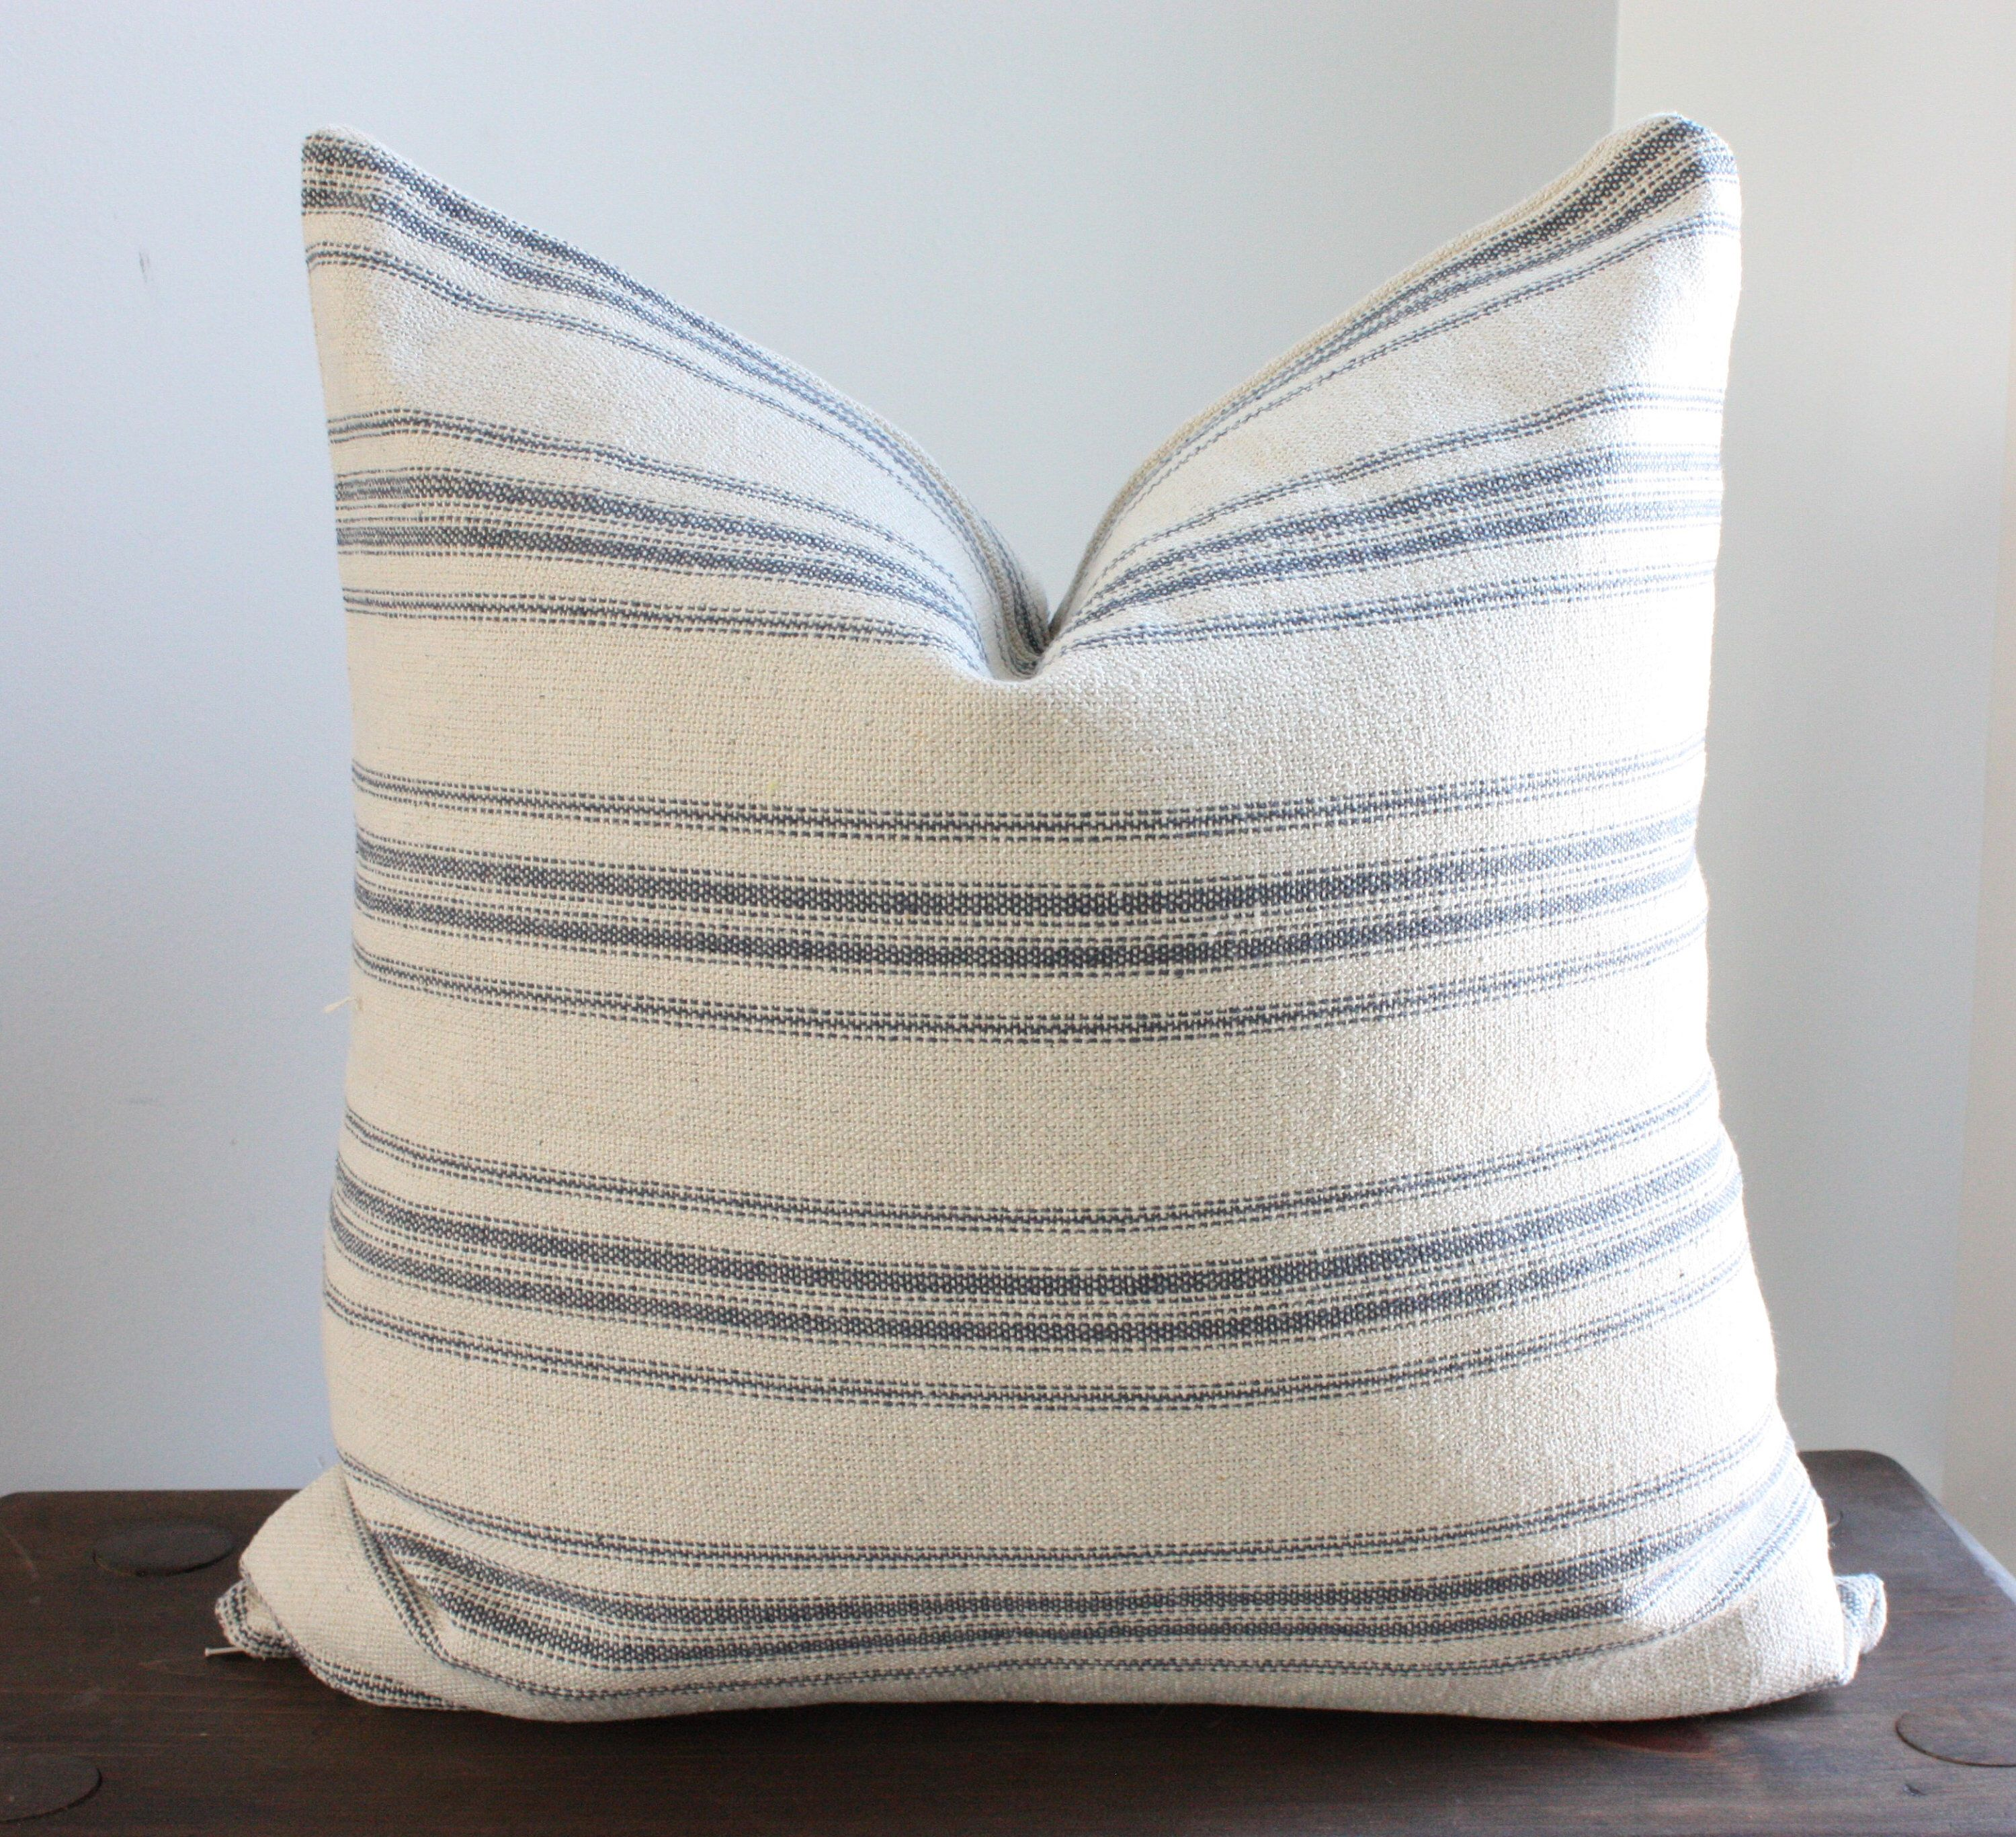 Beige with blue stripes grain sack style pillow cover